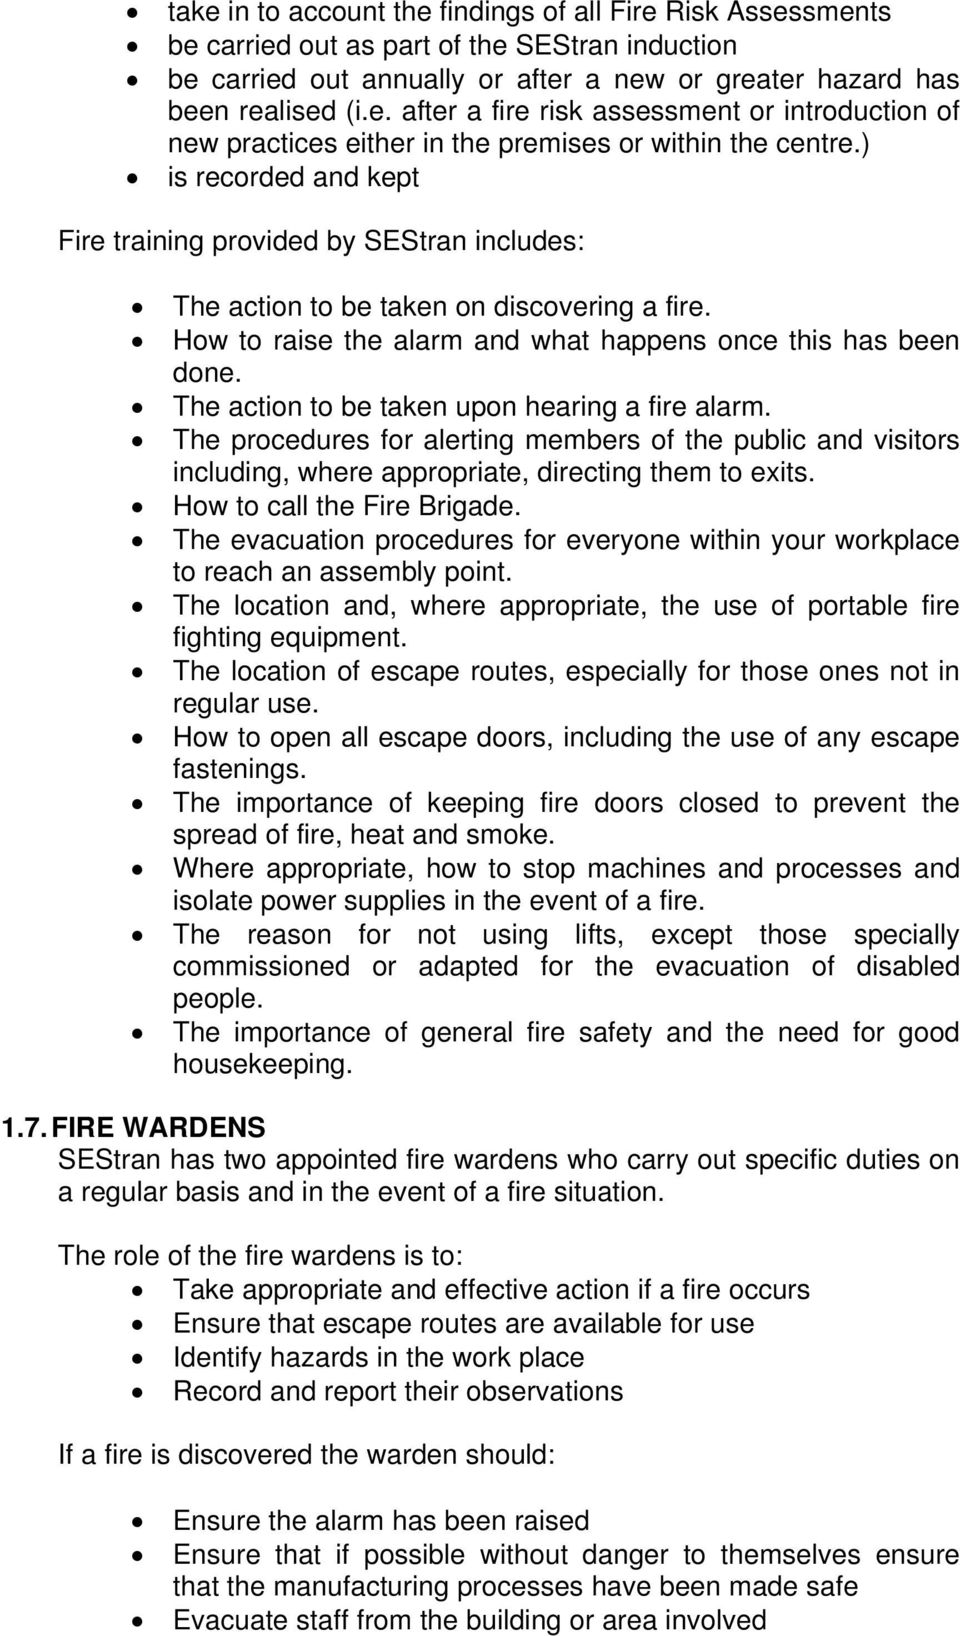 The action to be taken upon hearing a fire alarm. The procedures for alerting members of the public and visitors including, where appropriate, directing them to exits. How to call the Fire Brigade.